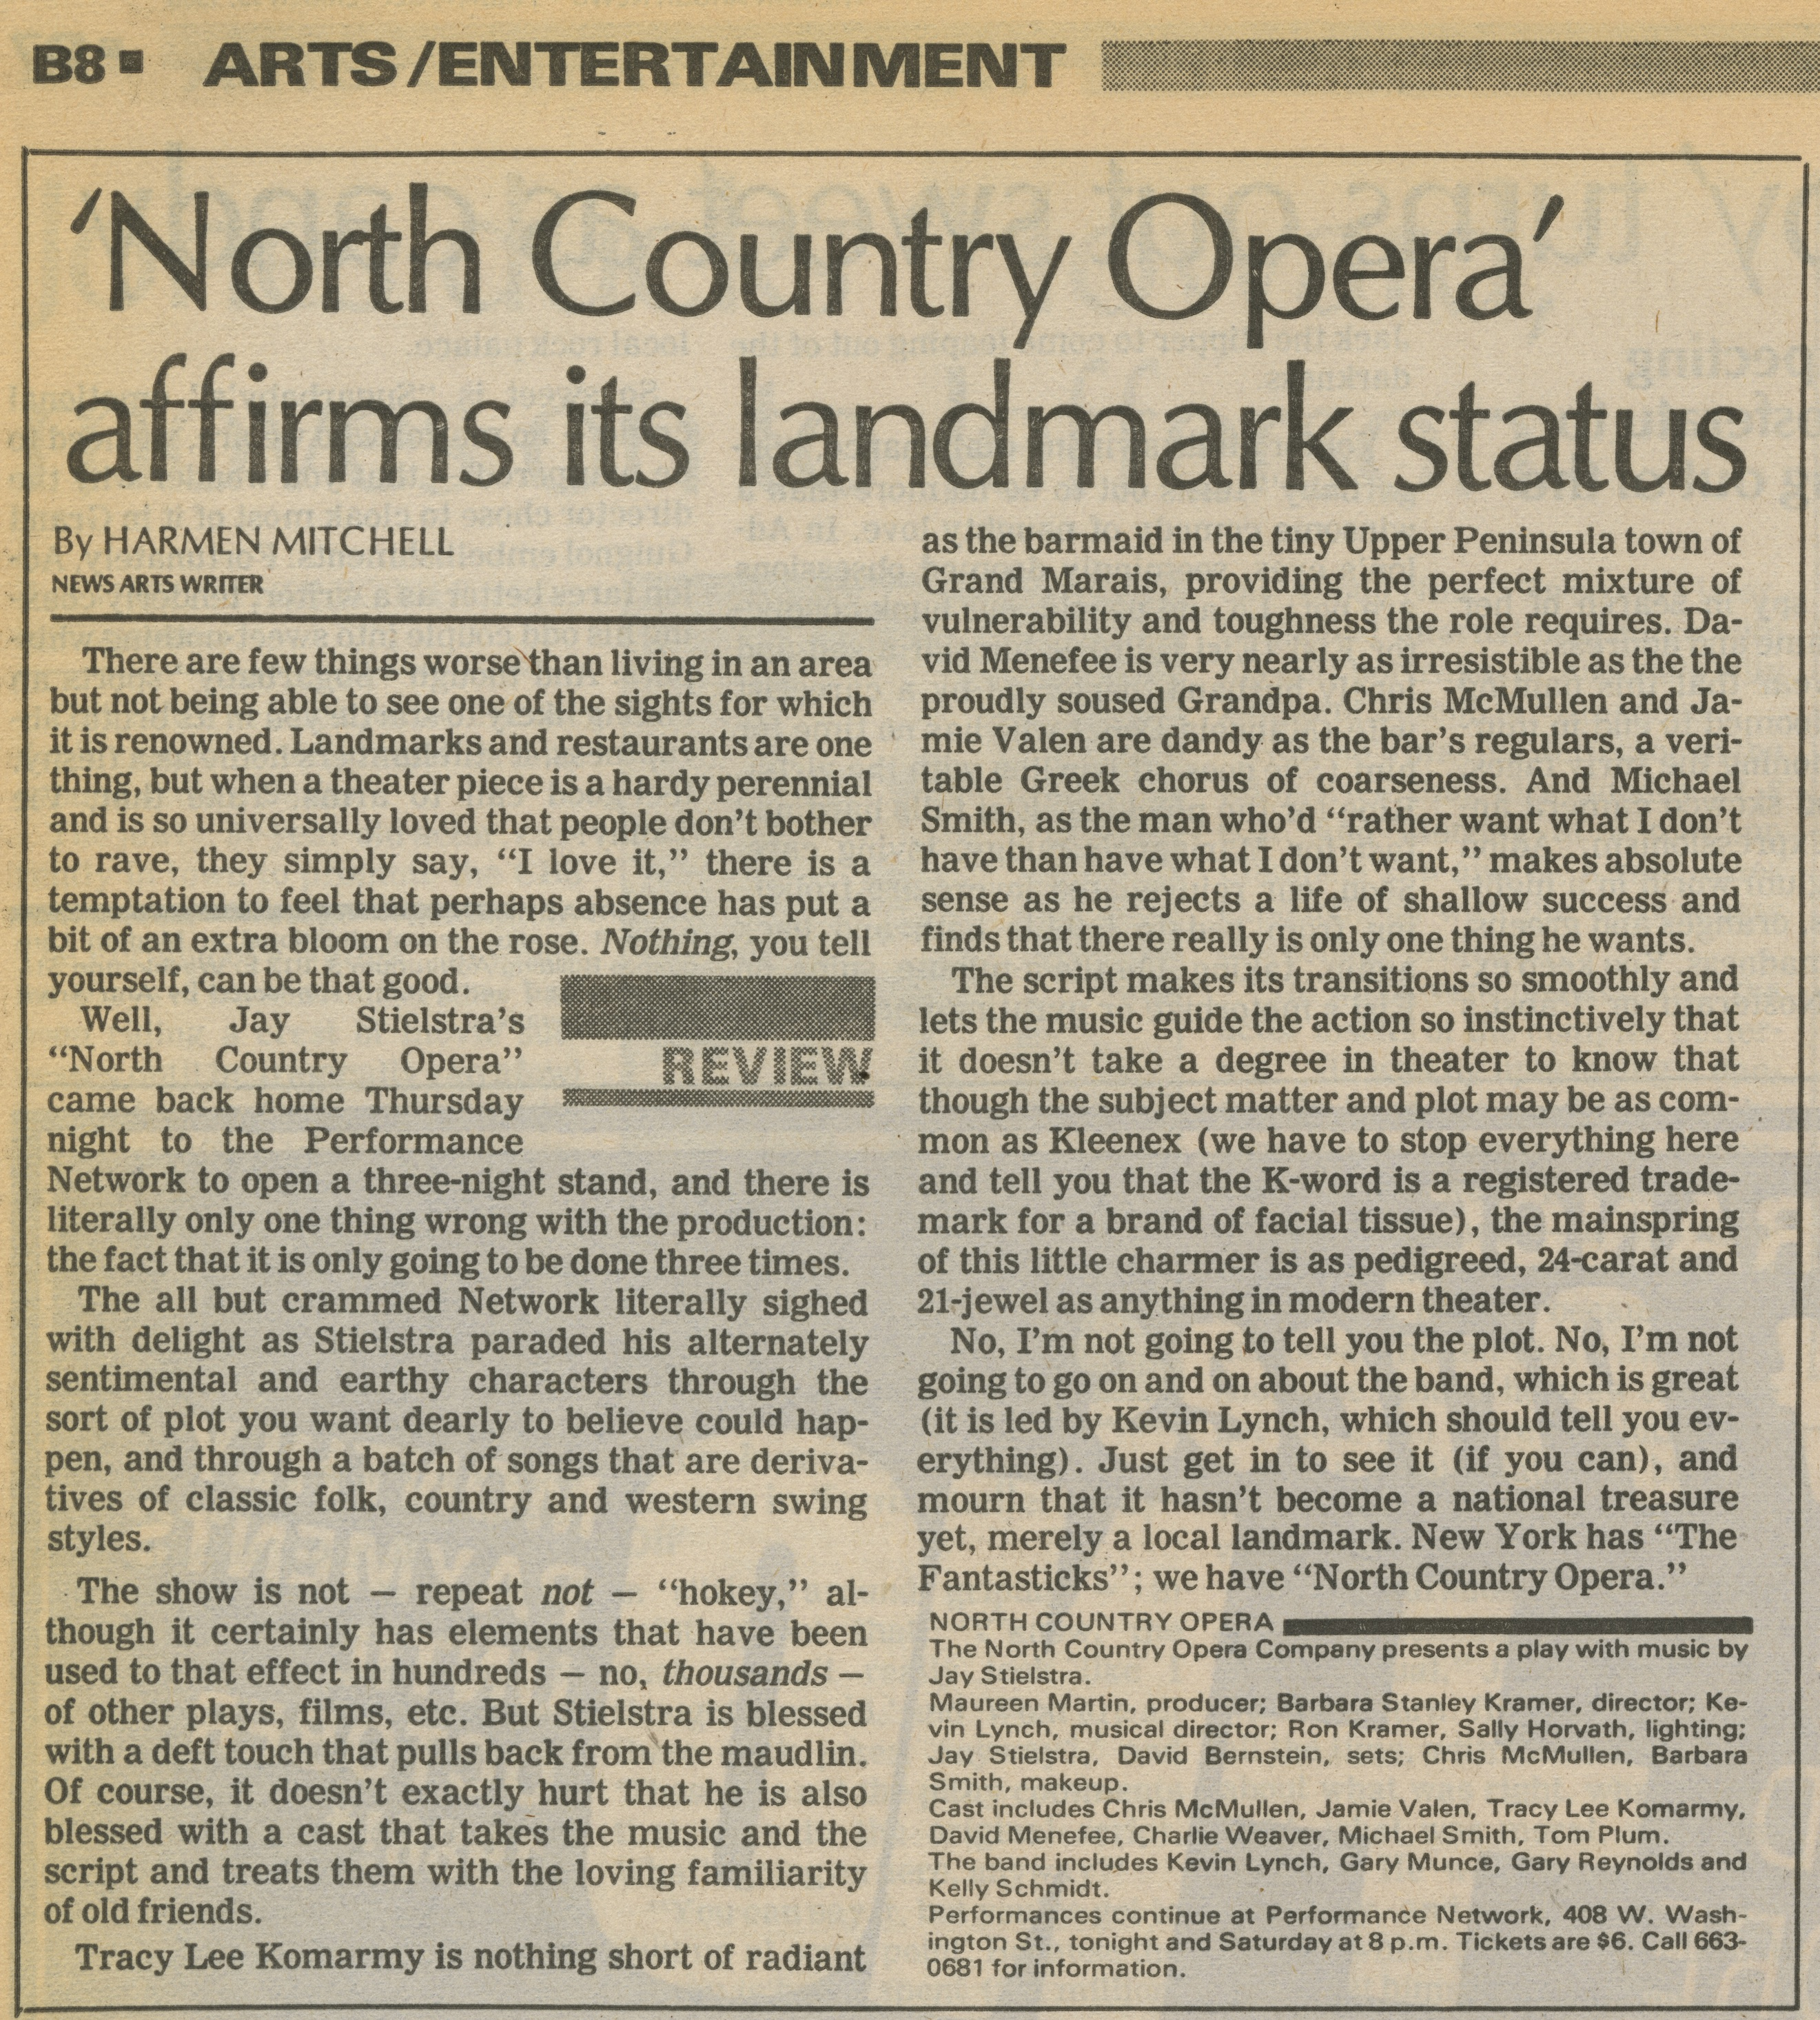 'North Country Opera' affirms its landmark status image